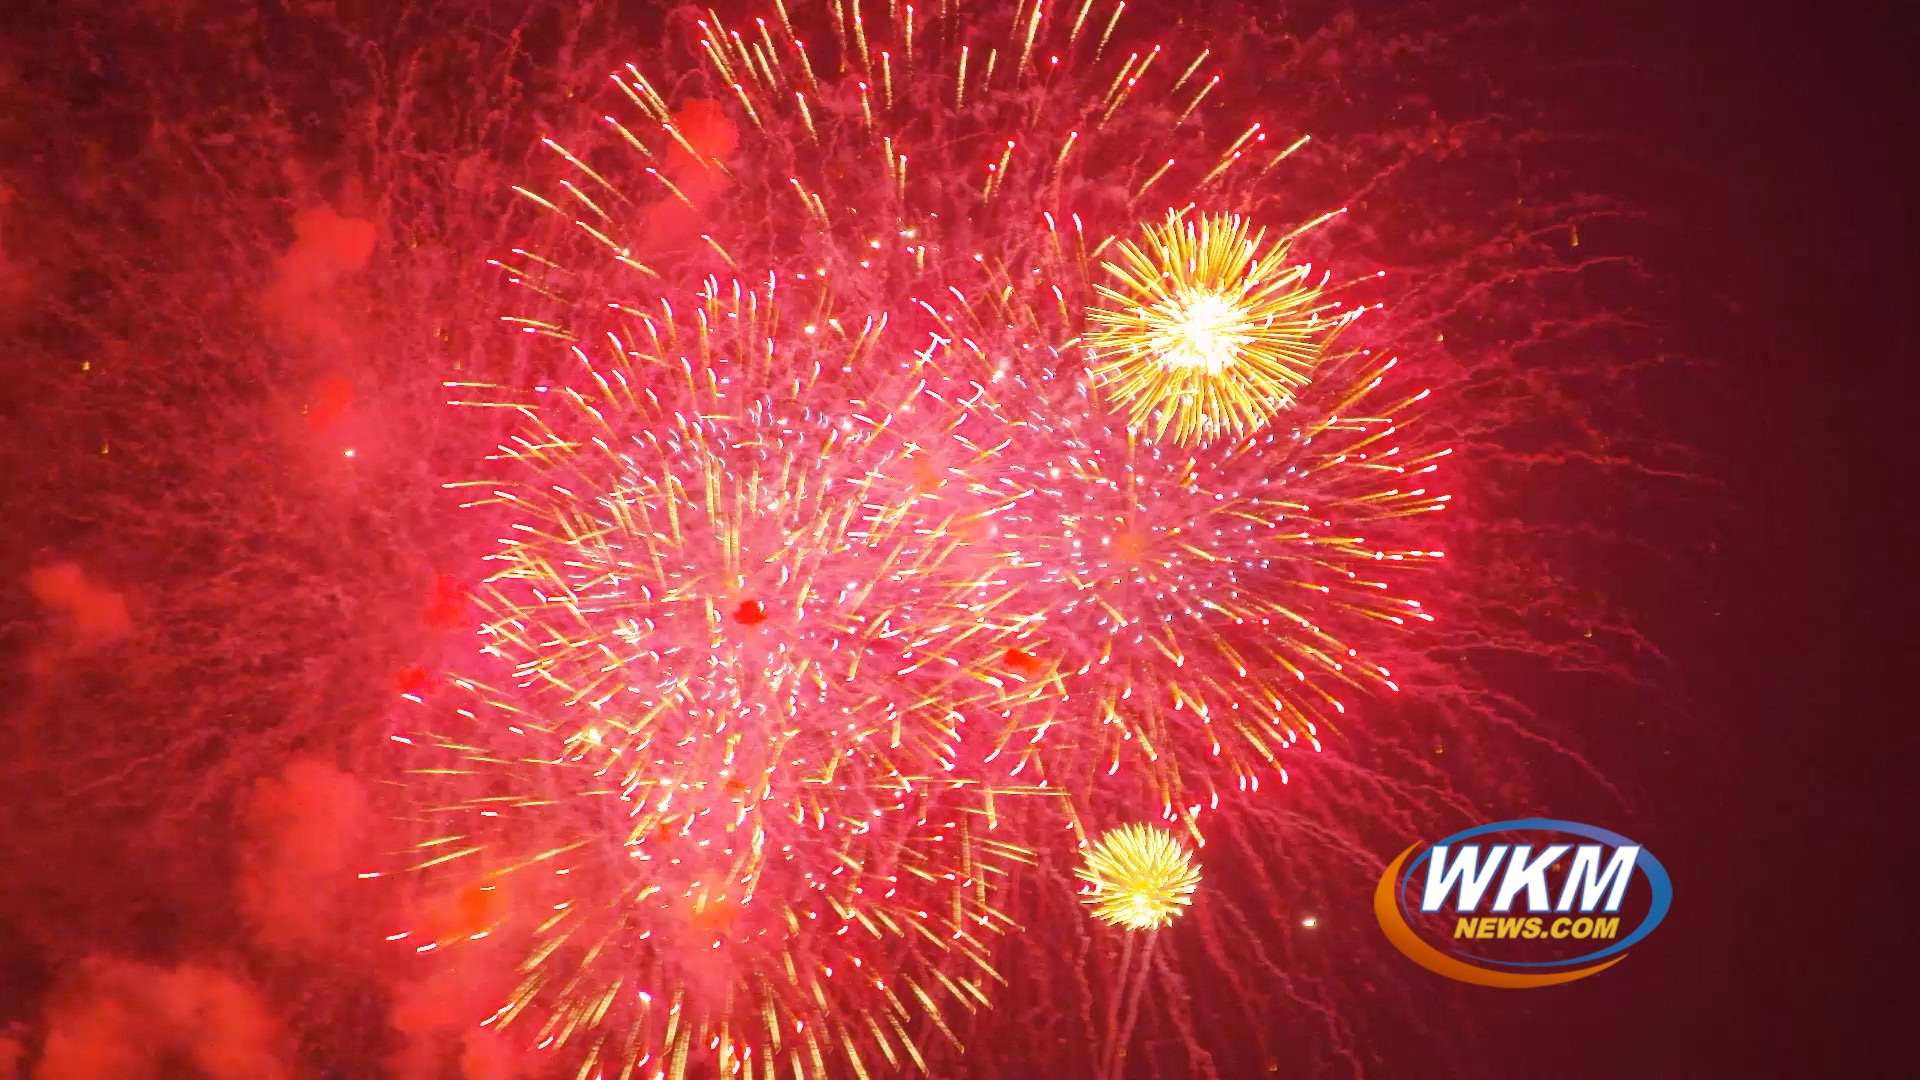 Here's Your WKM News 4th of July Weekend Weather Forecast!